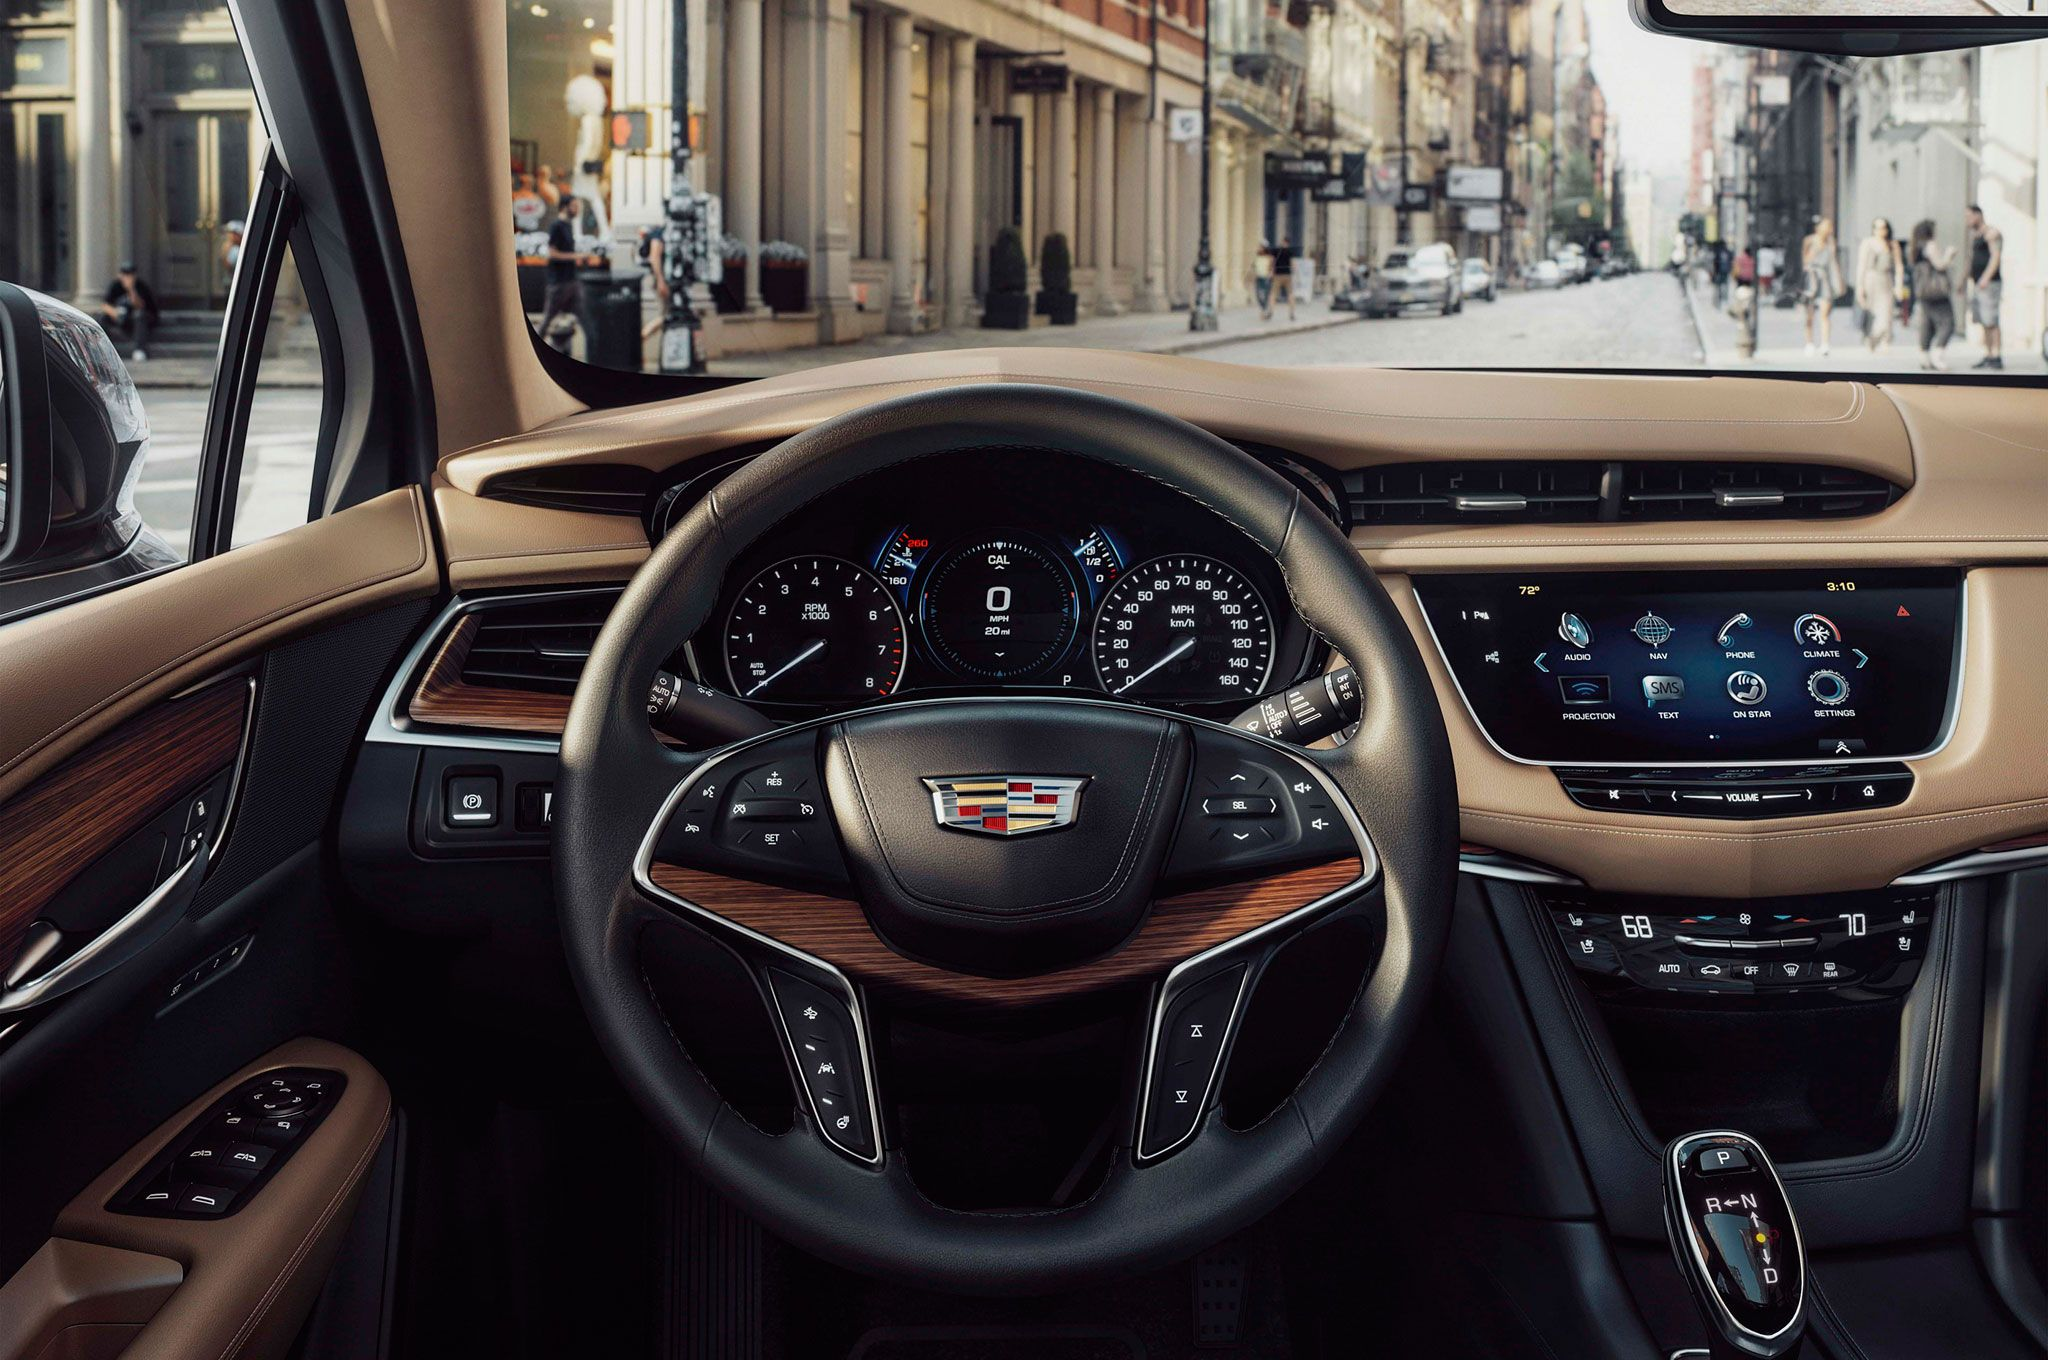 2018 cadillac usa. fine usa thoroughly progressive inside and out take a first look at the interior  access link in bio  photo from cadillac throughout 2018 usa e